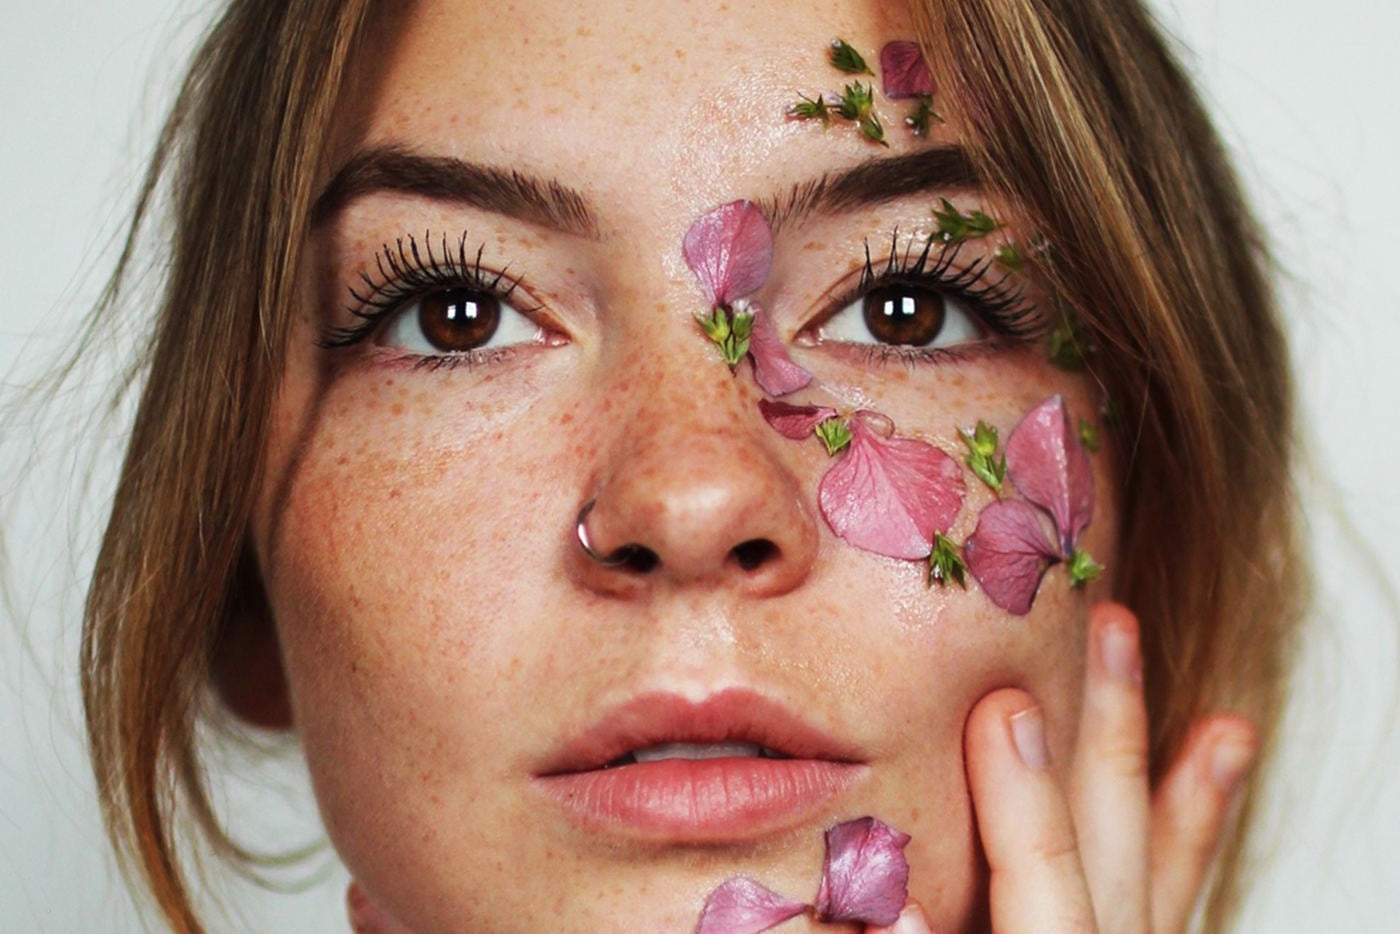 CLEAN, NATURAL, ORGANIC BEAUTY: WHAT'S THE DIFFERENCE?